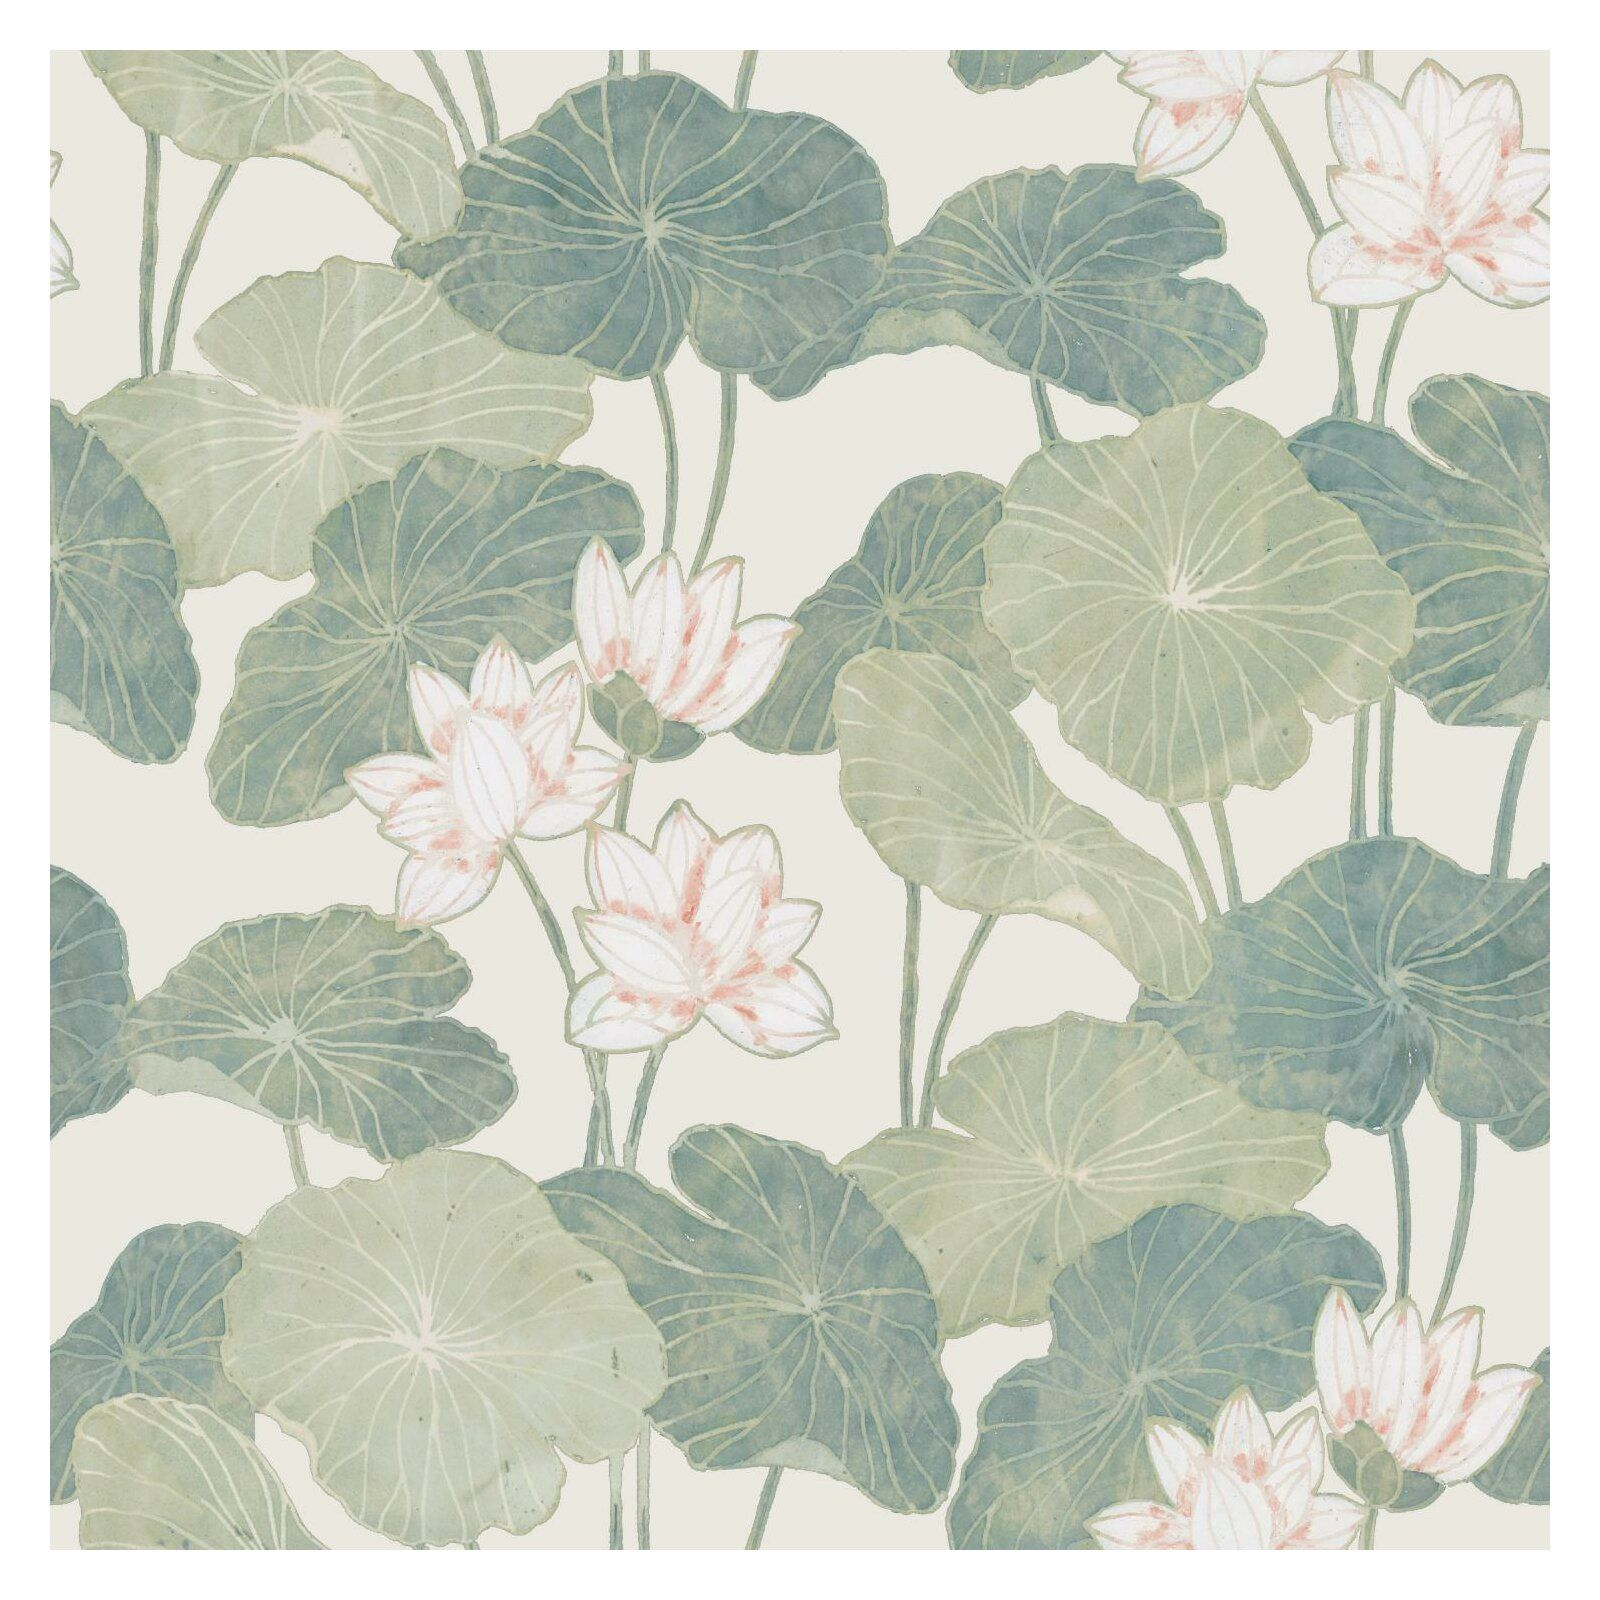 Dardanelle Lily Pads Peel And Stick Wallpaper Roll Peel And Stick Wallpaper Lily Pads Wallpaper